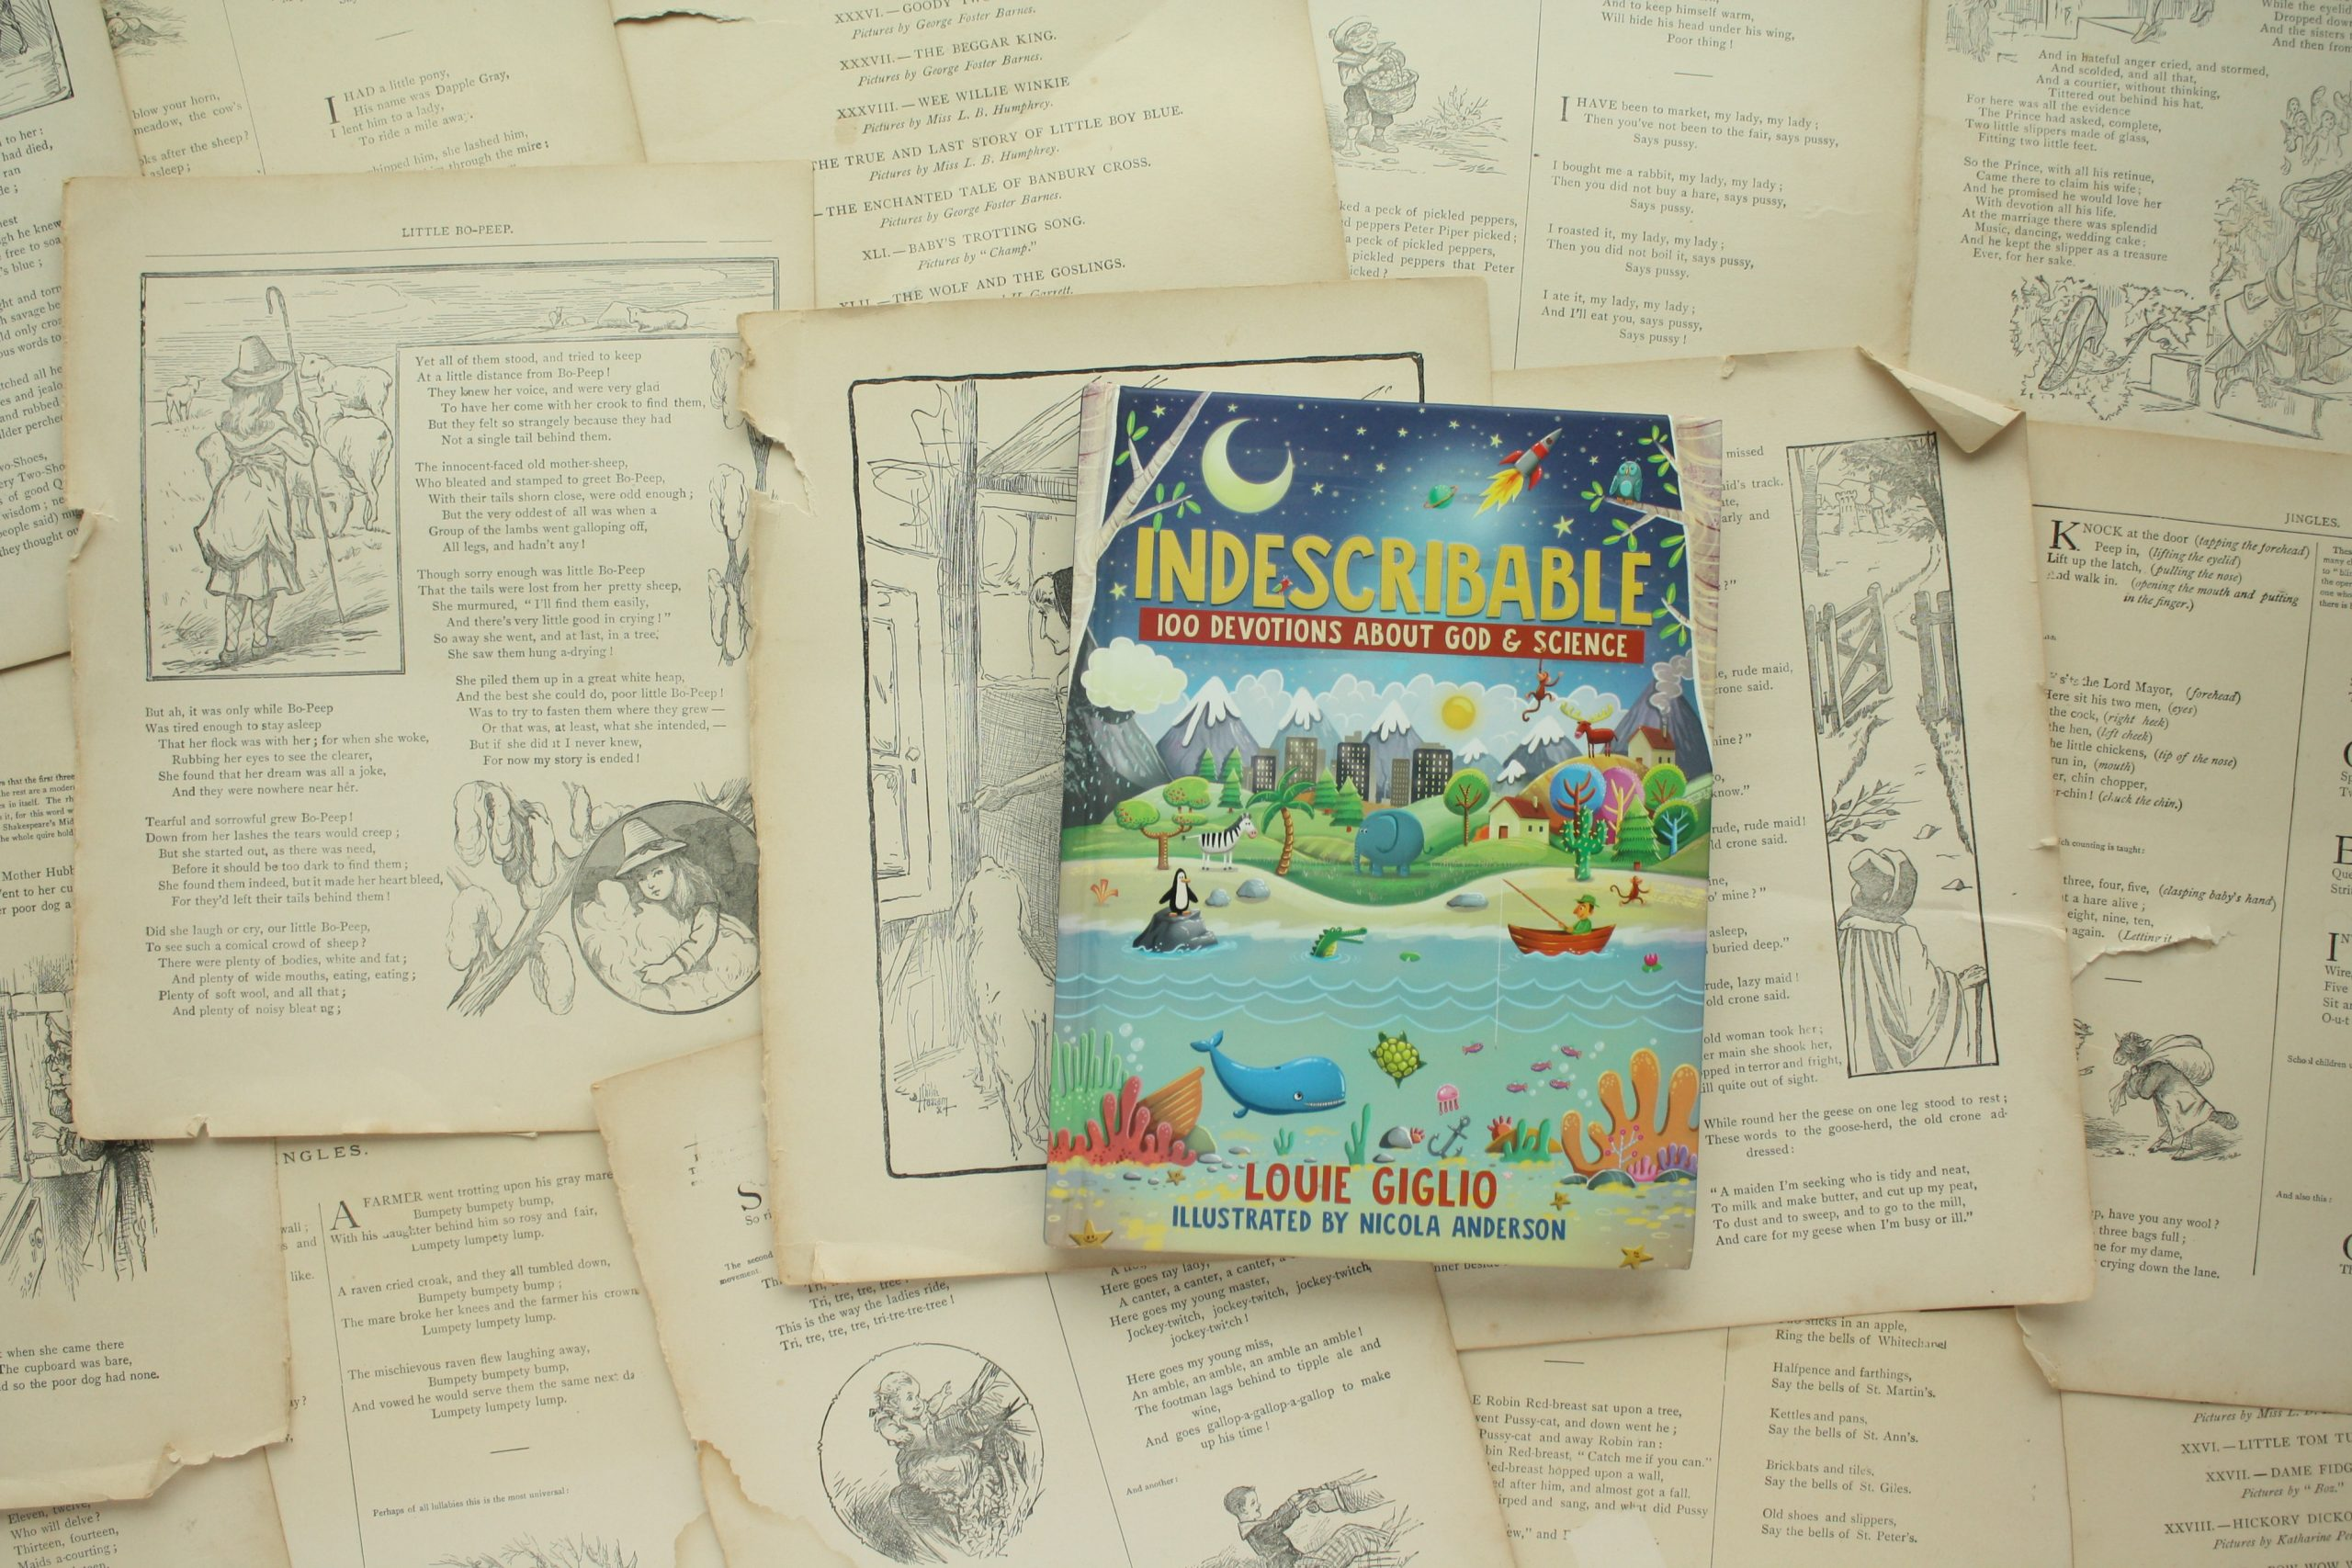 Indescribable | Louis Giglio